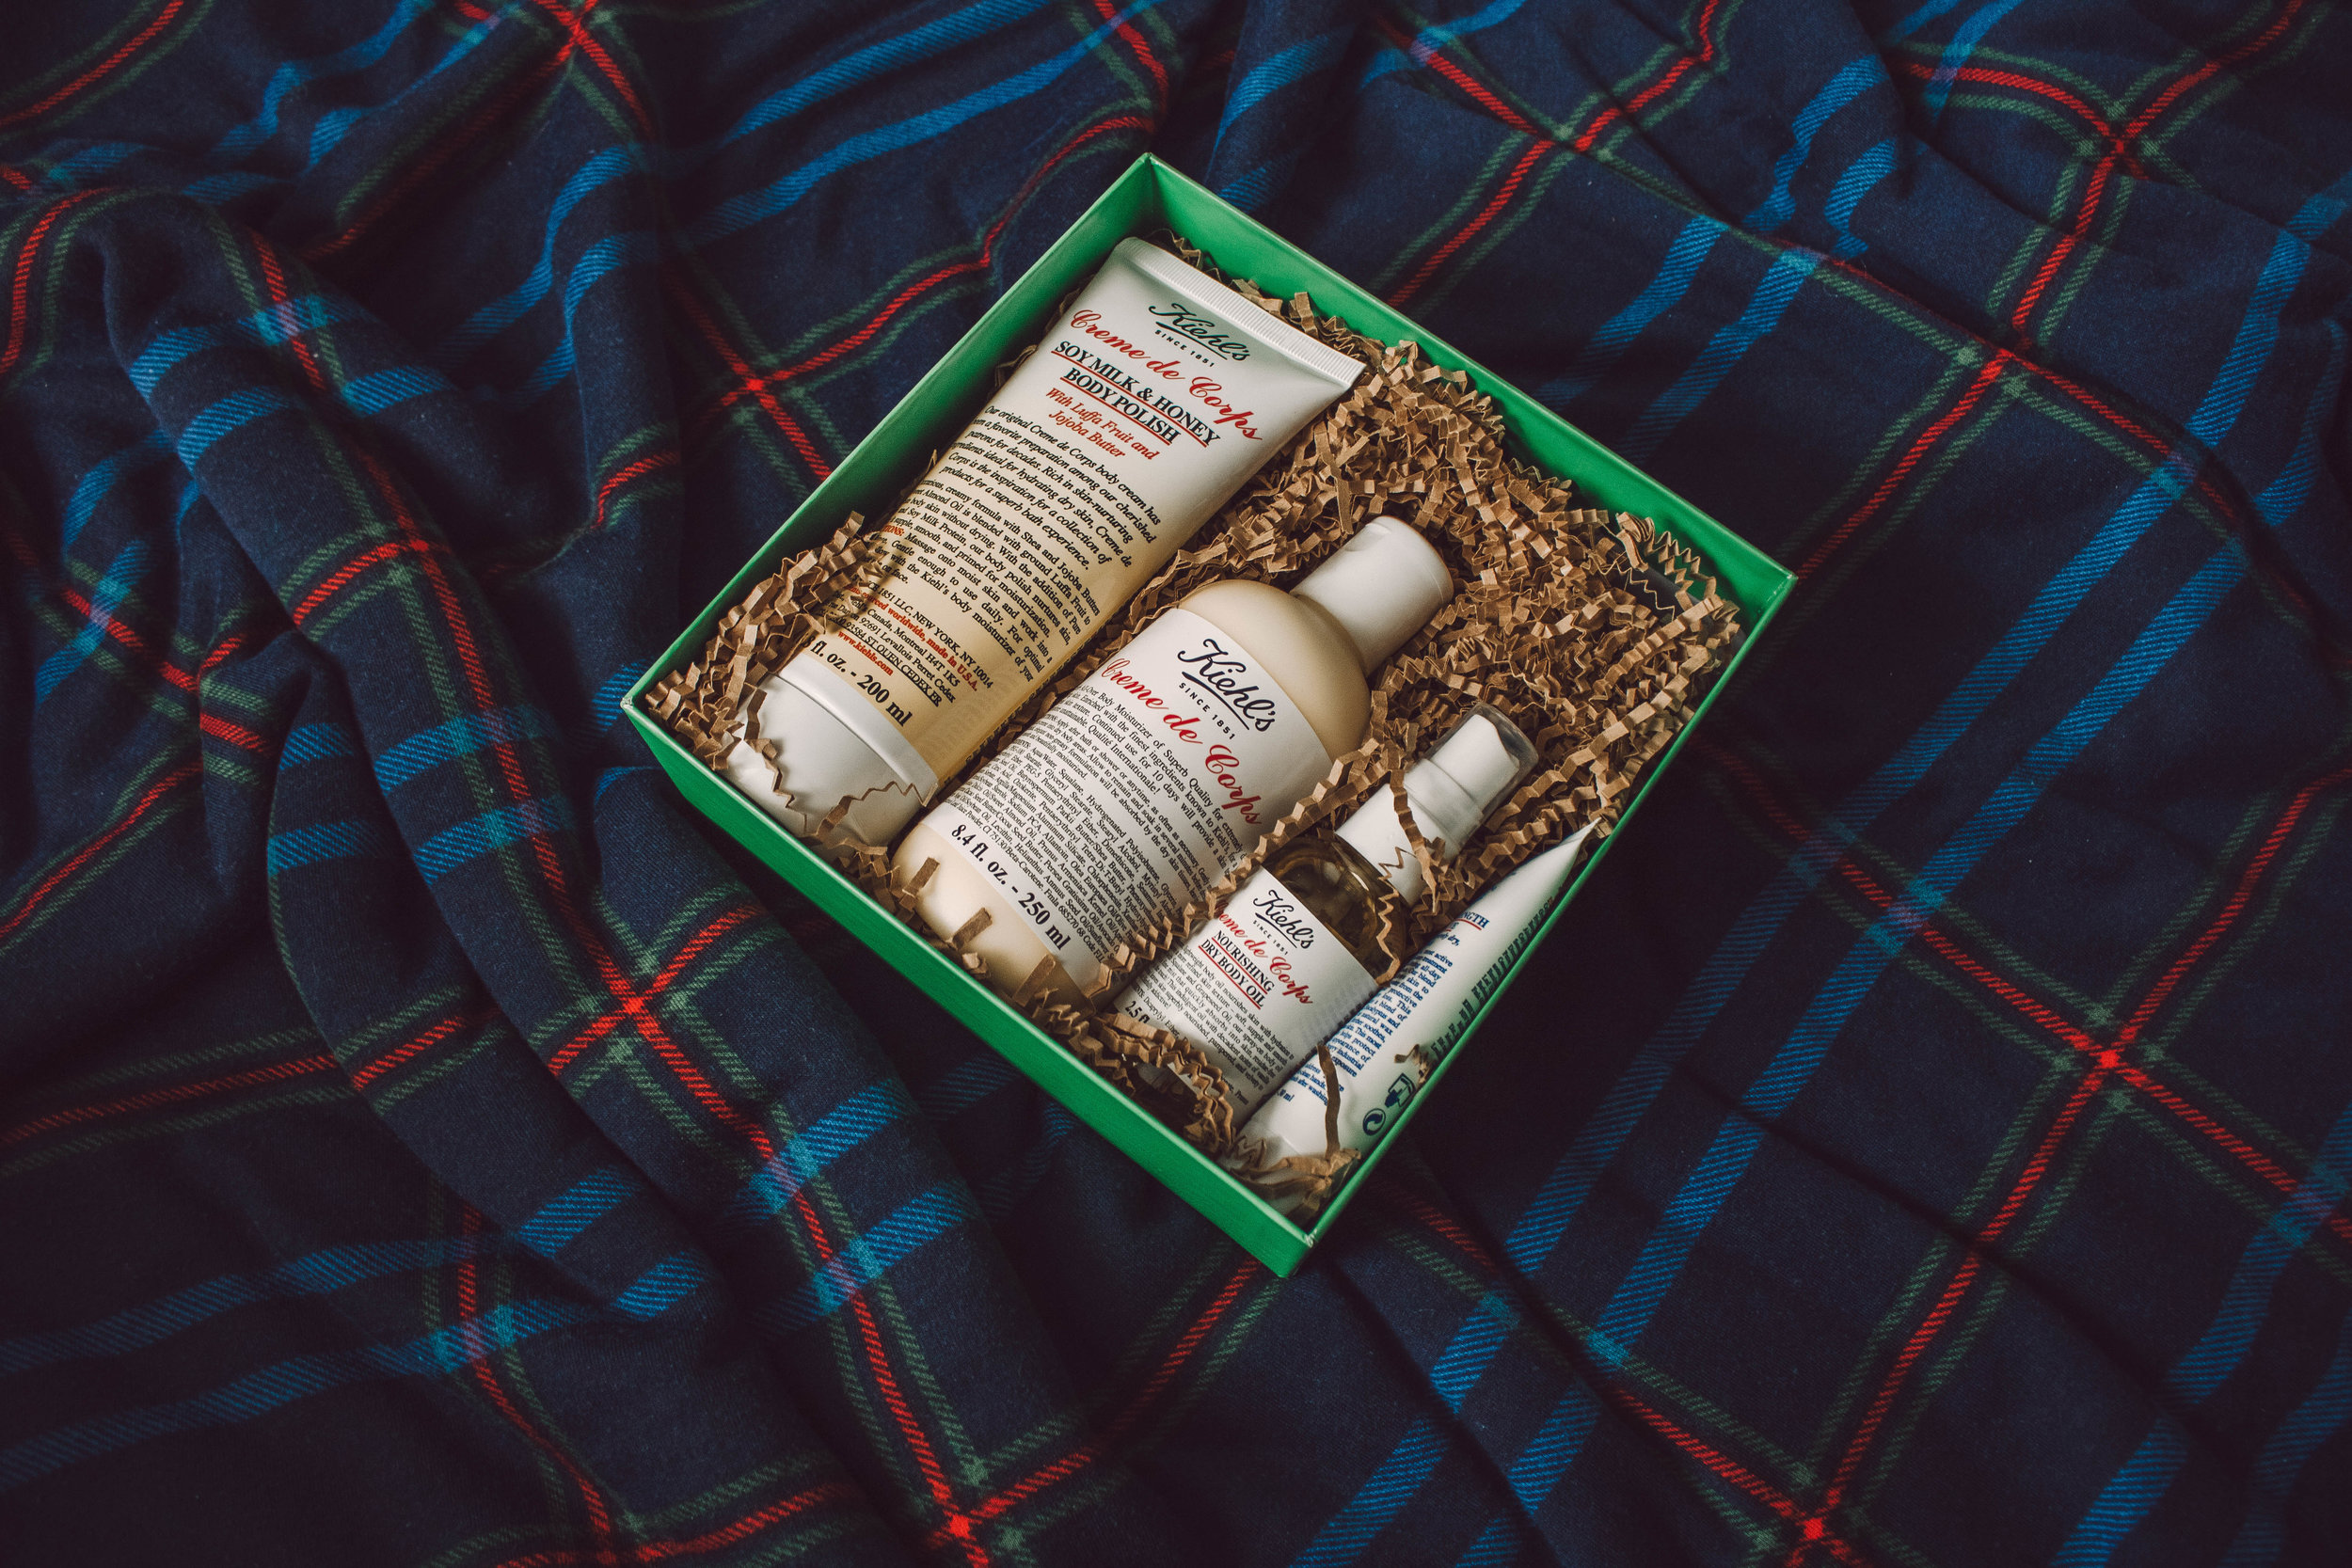 Beauty Gift Ideas with Kiehl's at The Fashion Mall, featured by top Indianapolis beauty blog, Trendy in Indy: image of Kiehl's beauty set